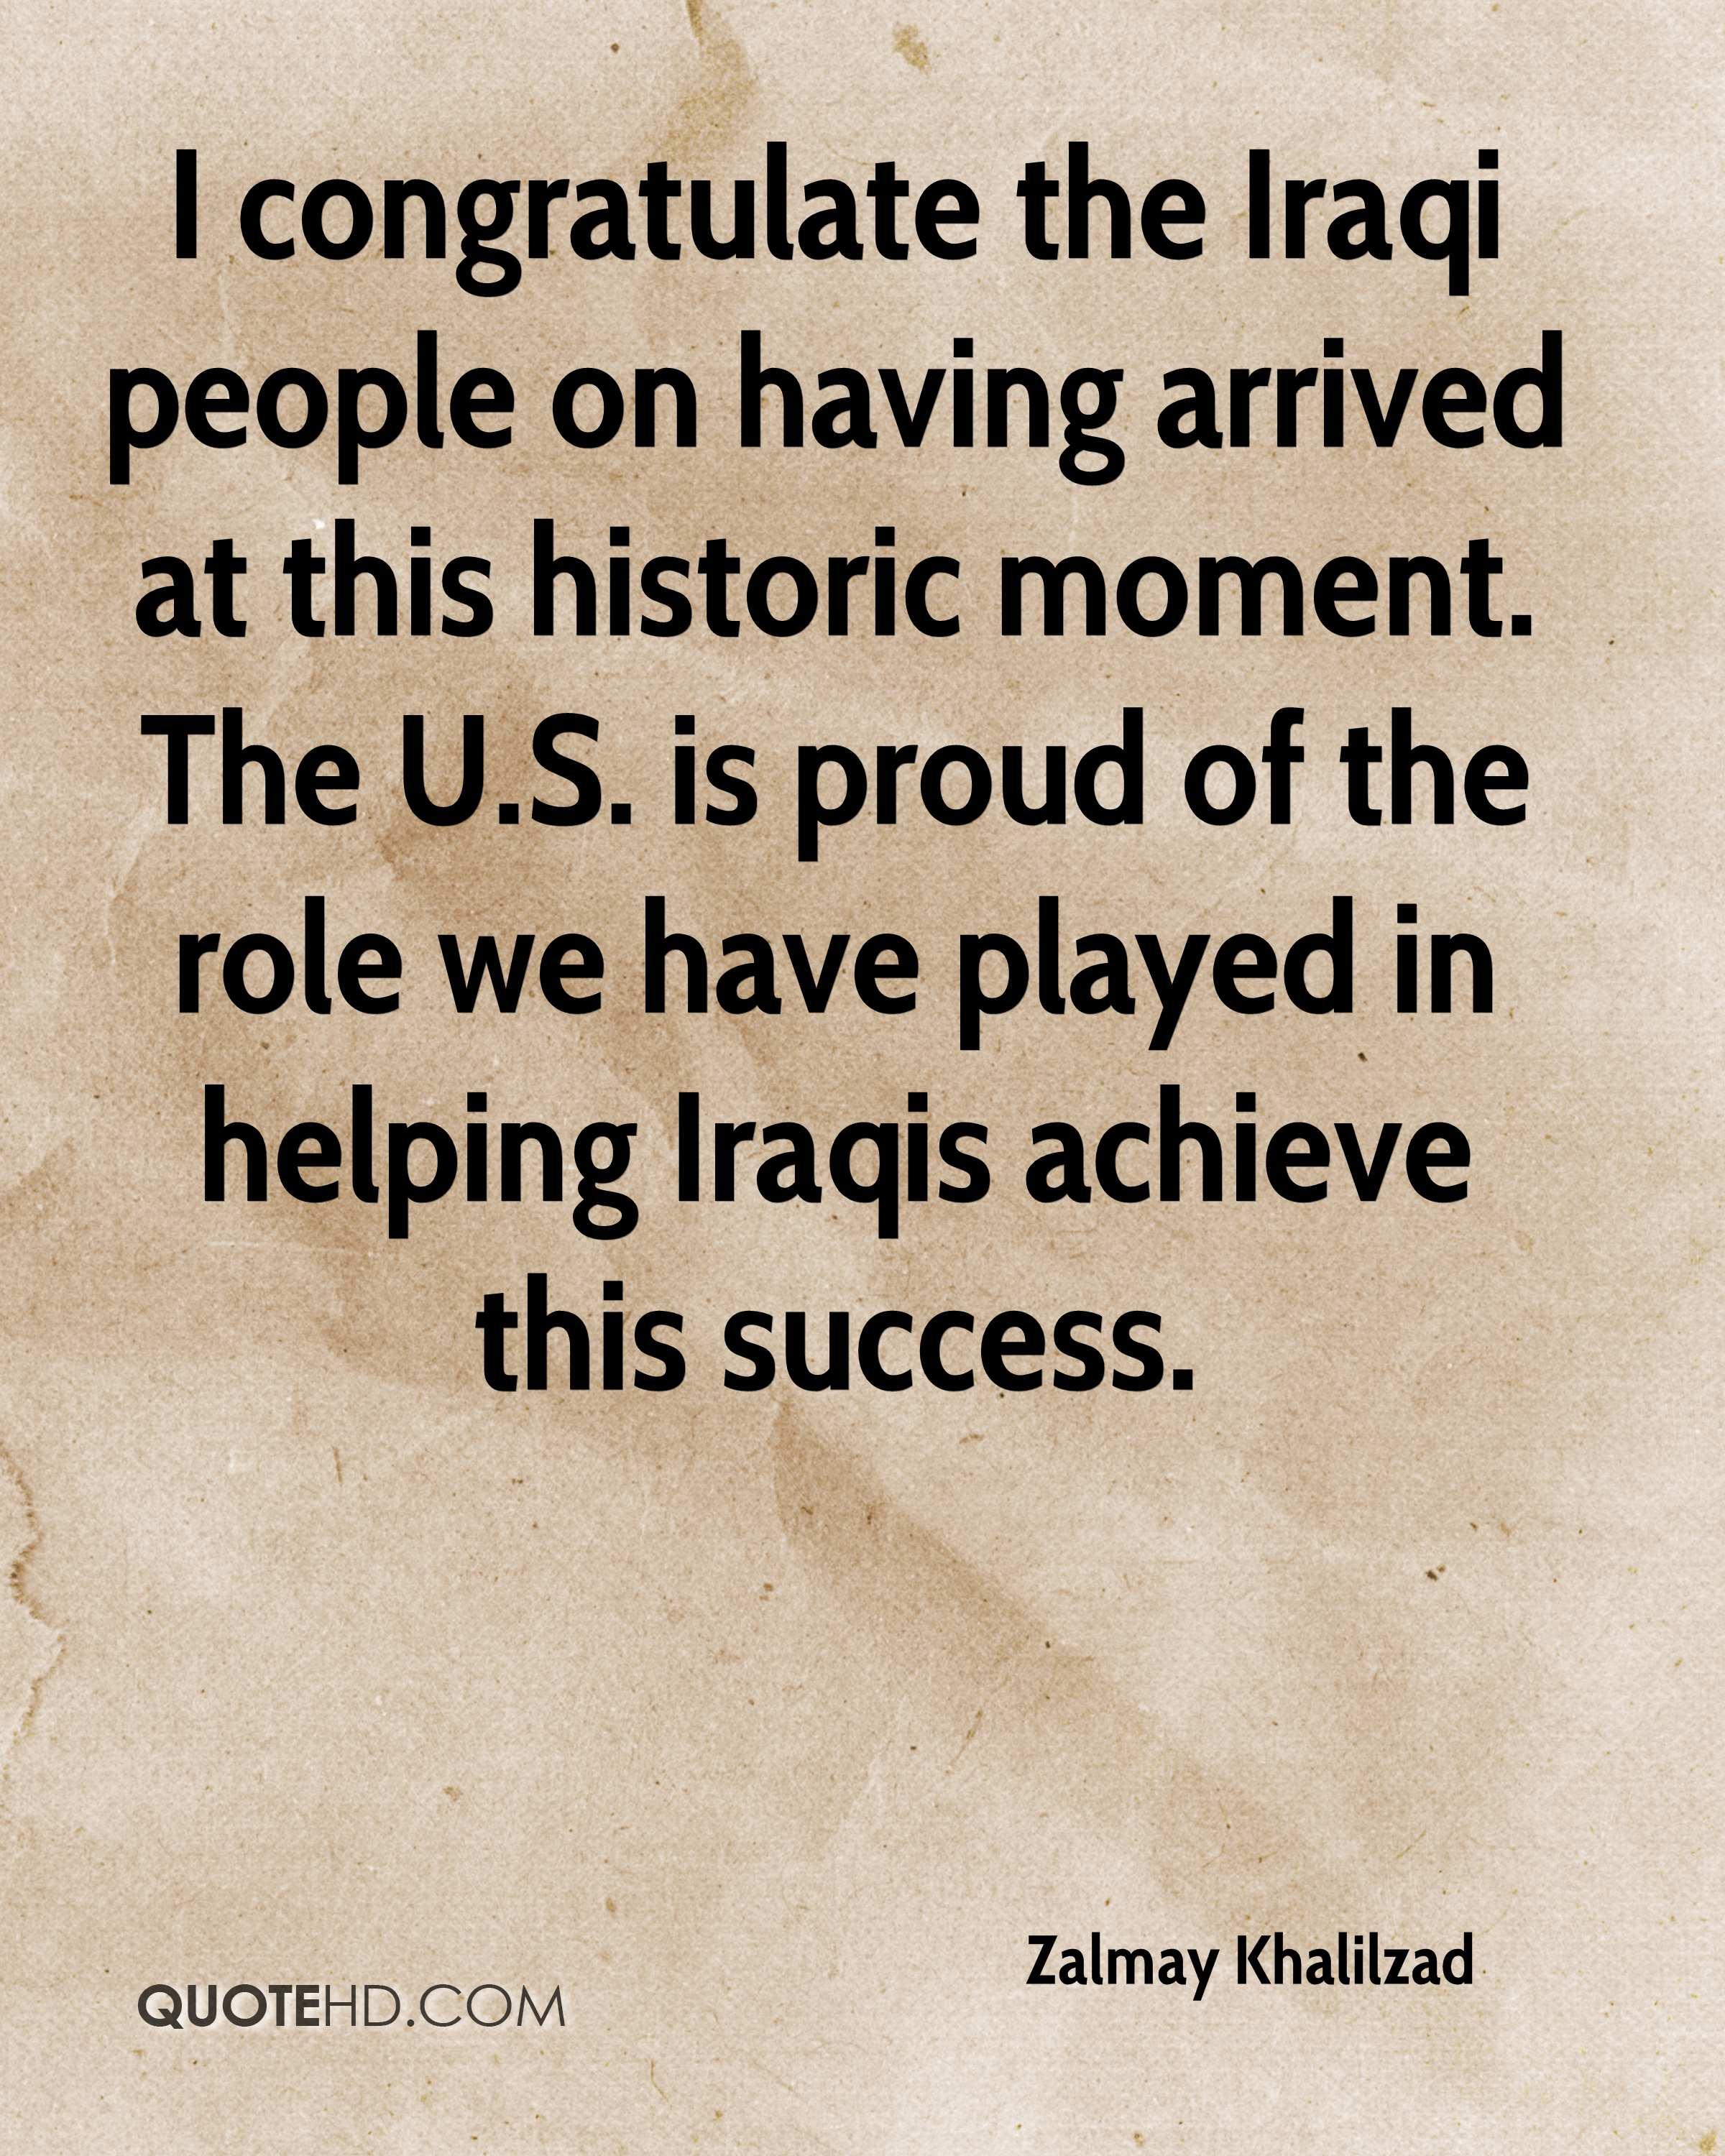 I congratulate the Iraqi people on having arrived at this historic moment. The U.S. is proud of the role we have played in helping Iraqis achieve this success.